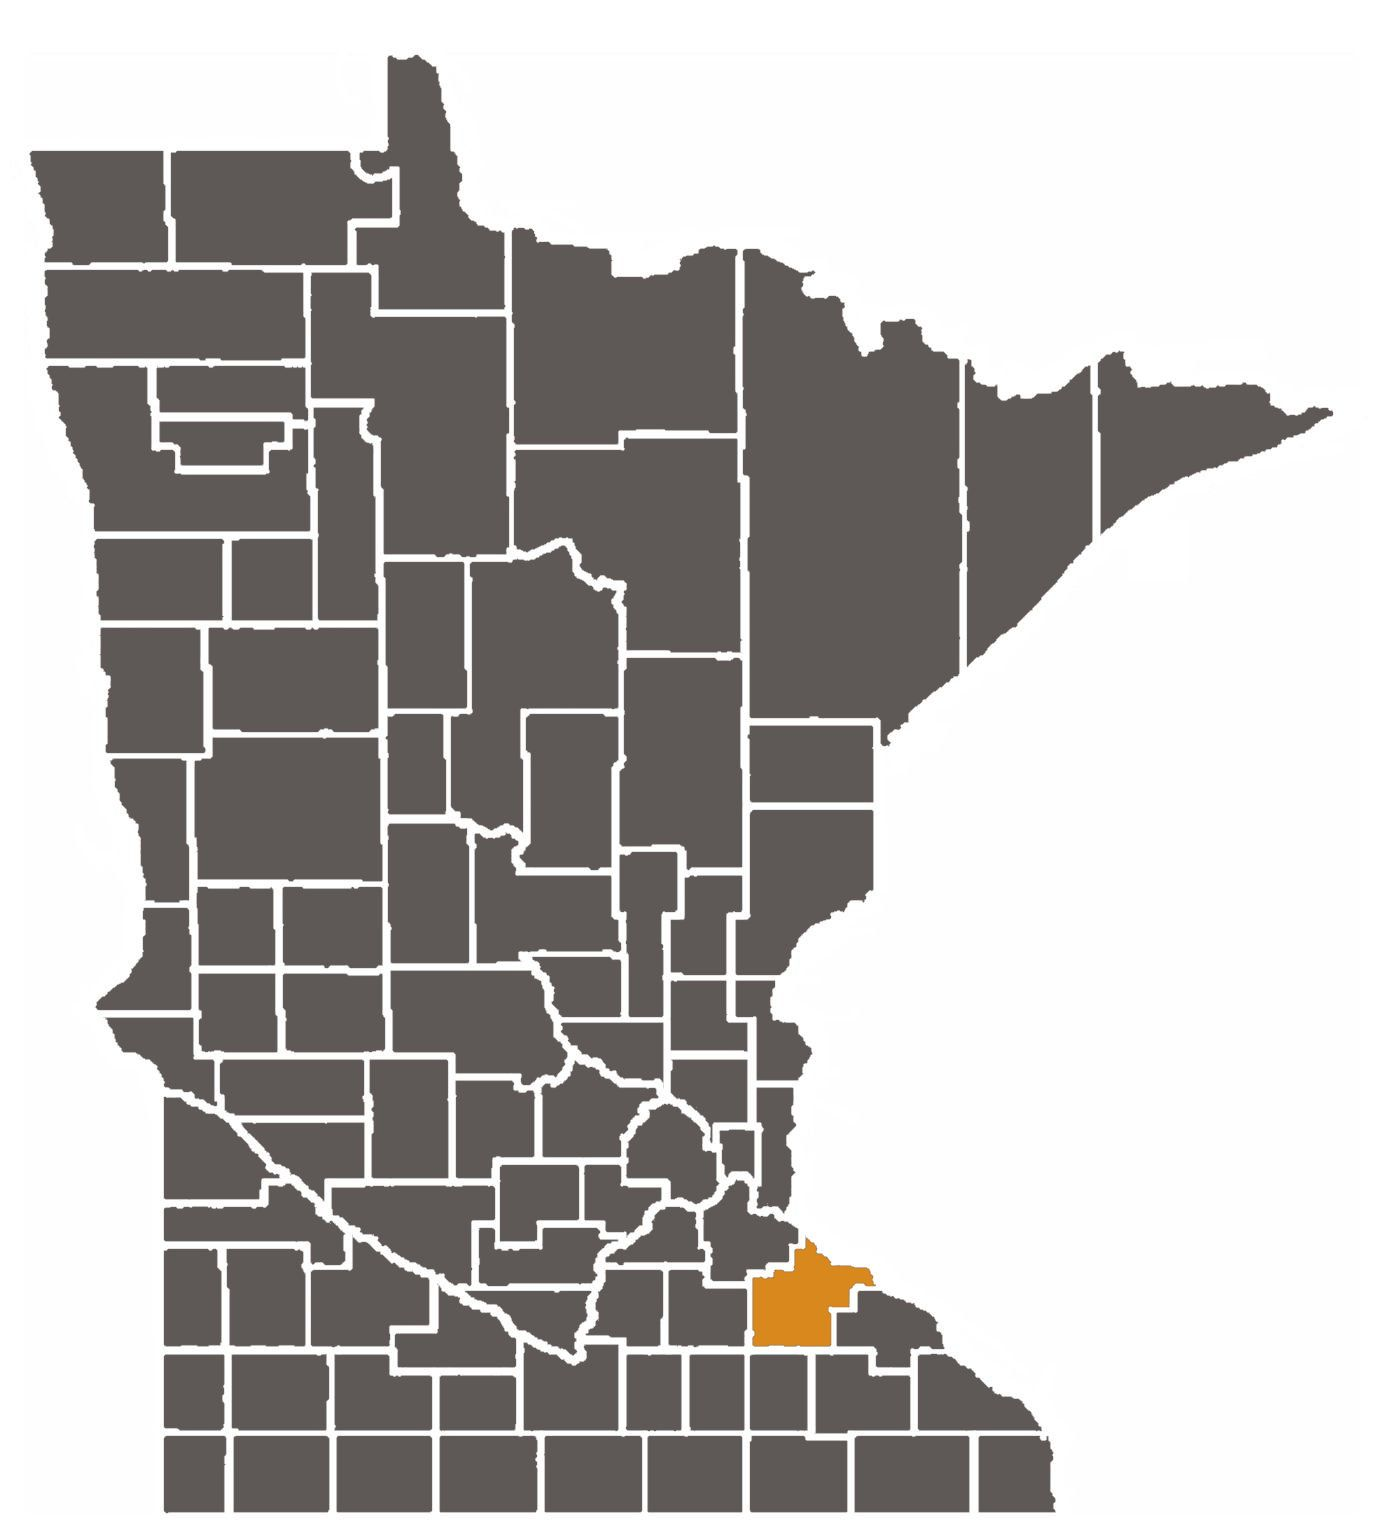 Minnesota map with Goodhue County highlighted.